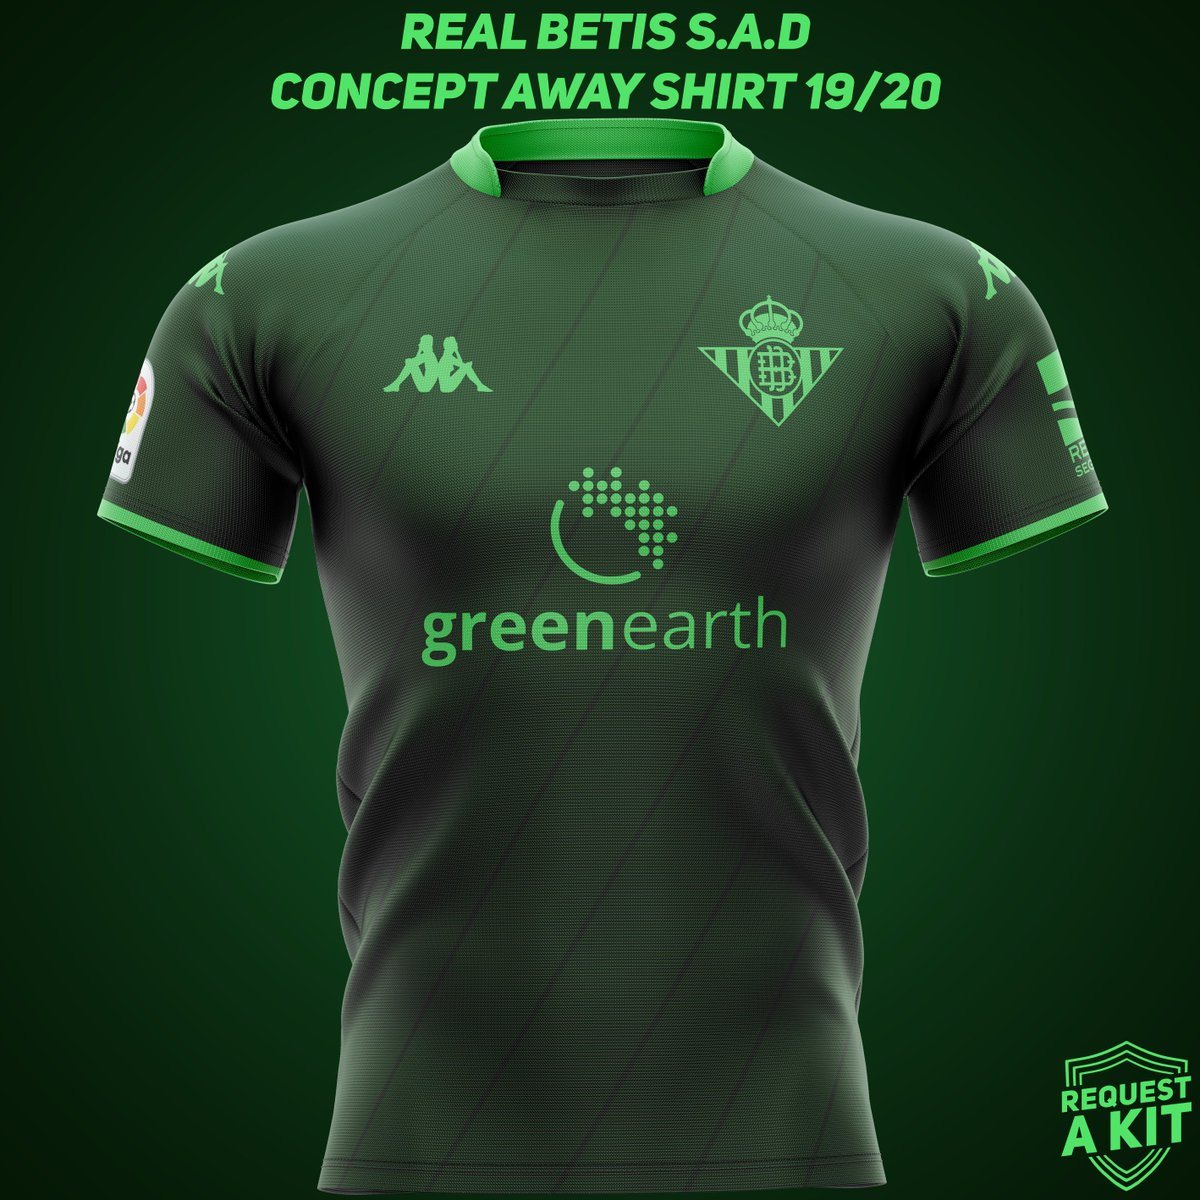 Request A Kit On Twitter Real Betis S A D Concept Home Away And Third Shirts 2019 20 Requested By Fm Carrera Betis Realbetis Muchobetis Fm19 Wearethecommunity Download For Your Football Manager Save Here Https T Co Oezjtf1vsd Https T